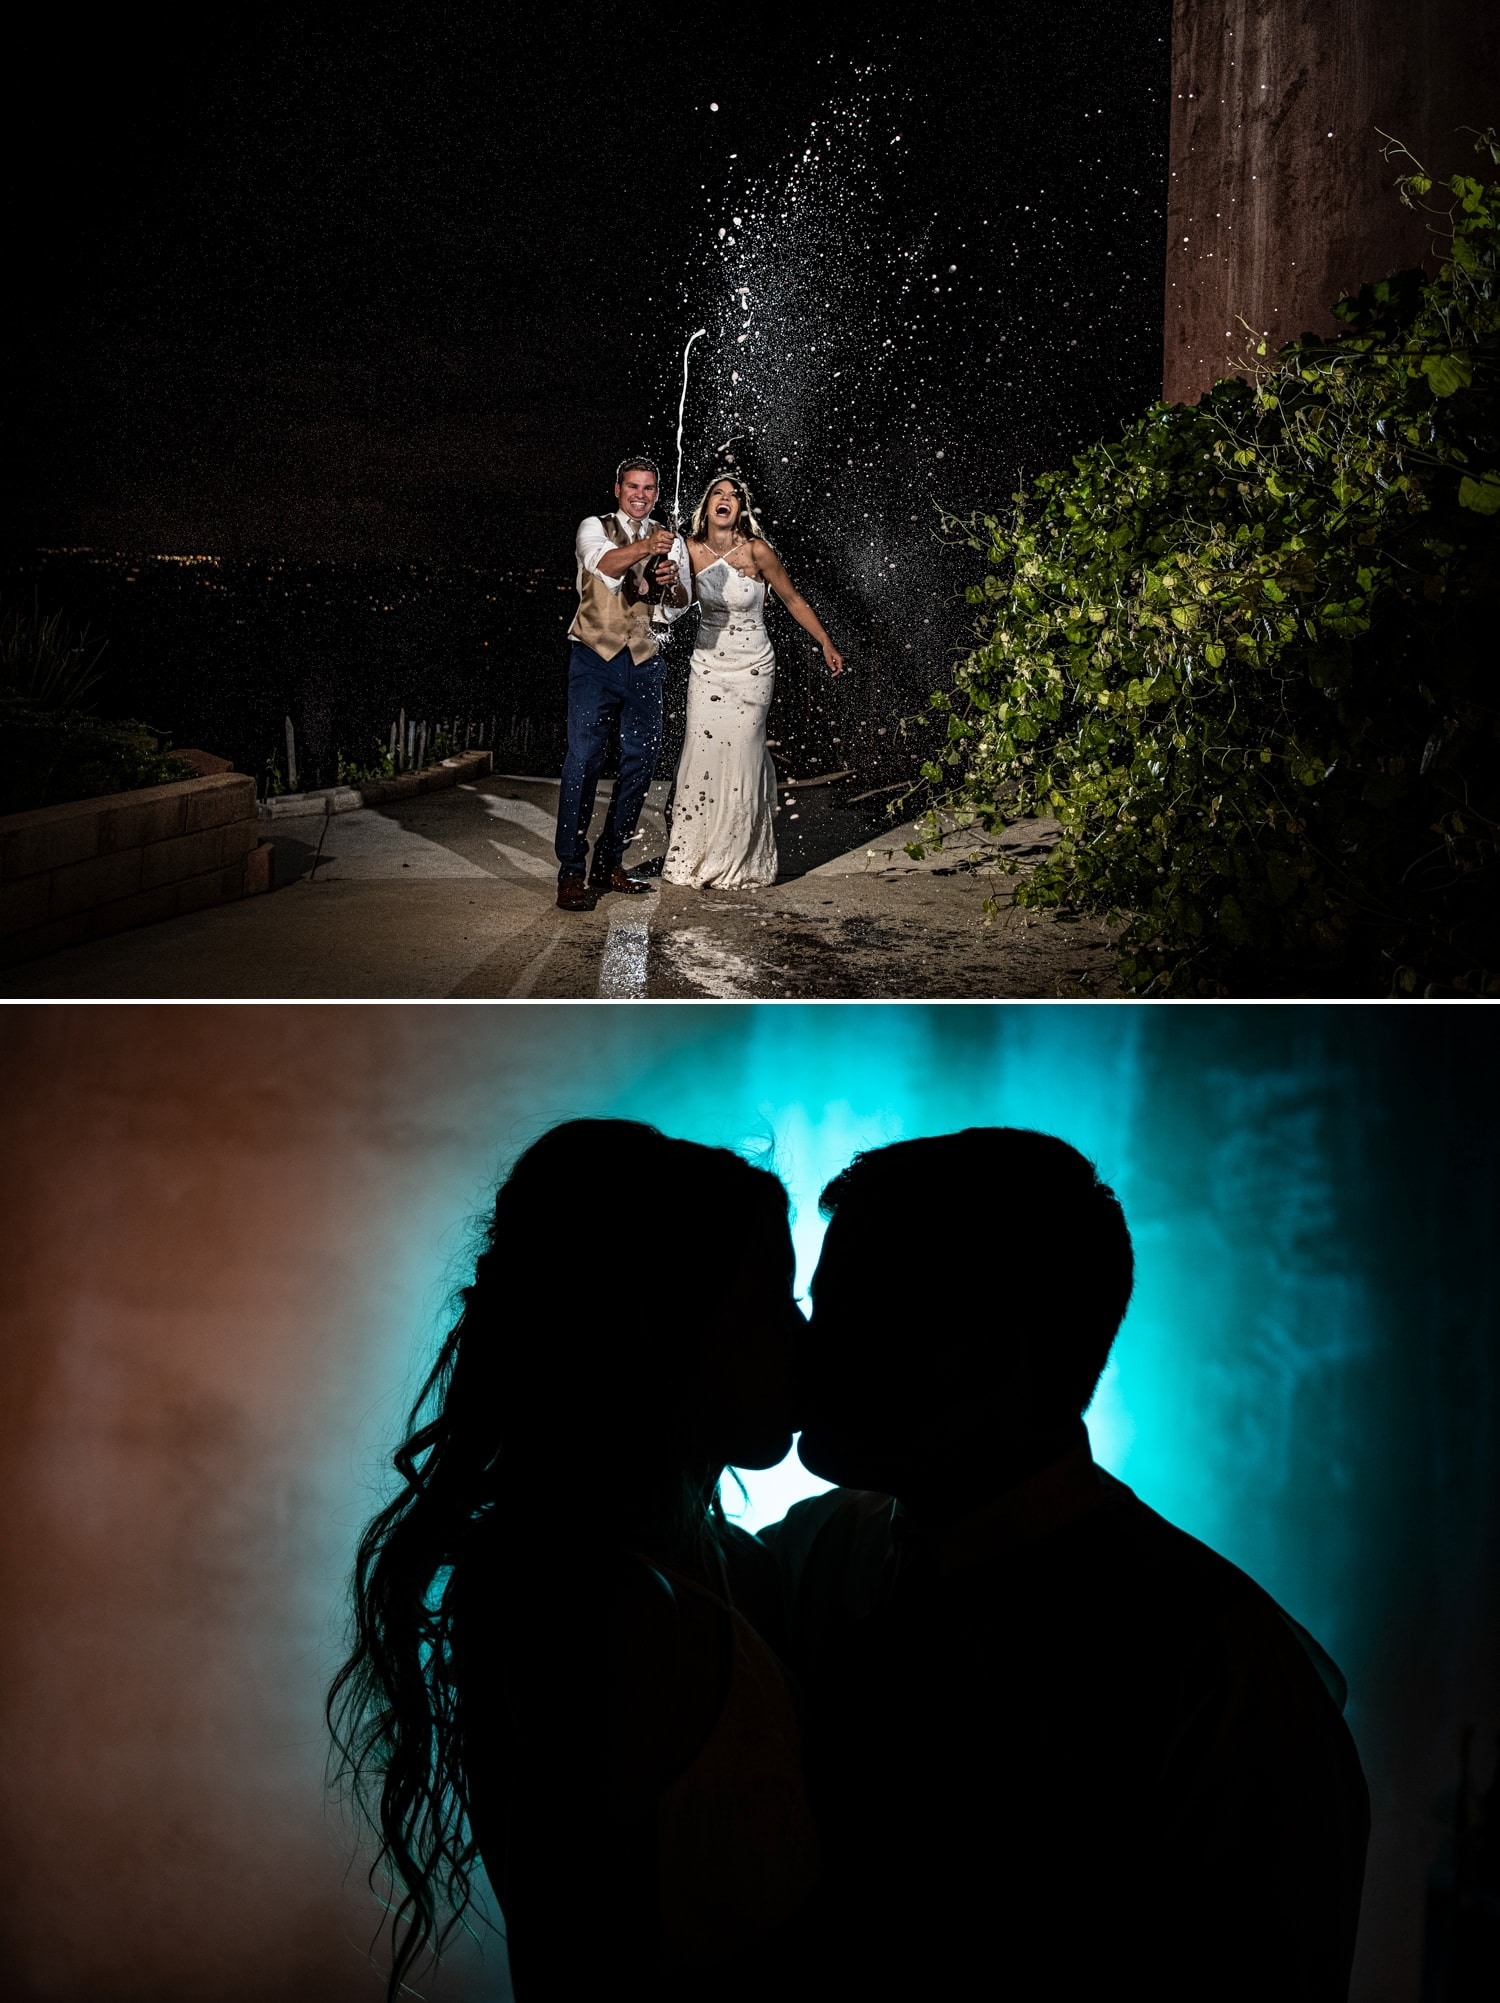 Night photography with bride and groom.